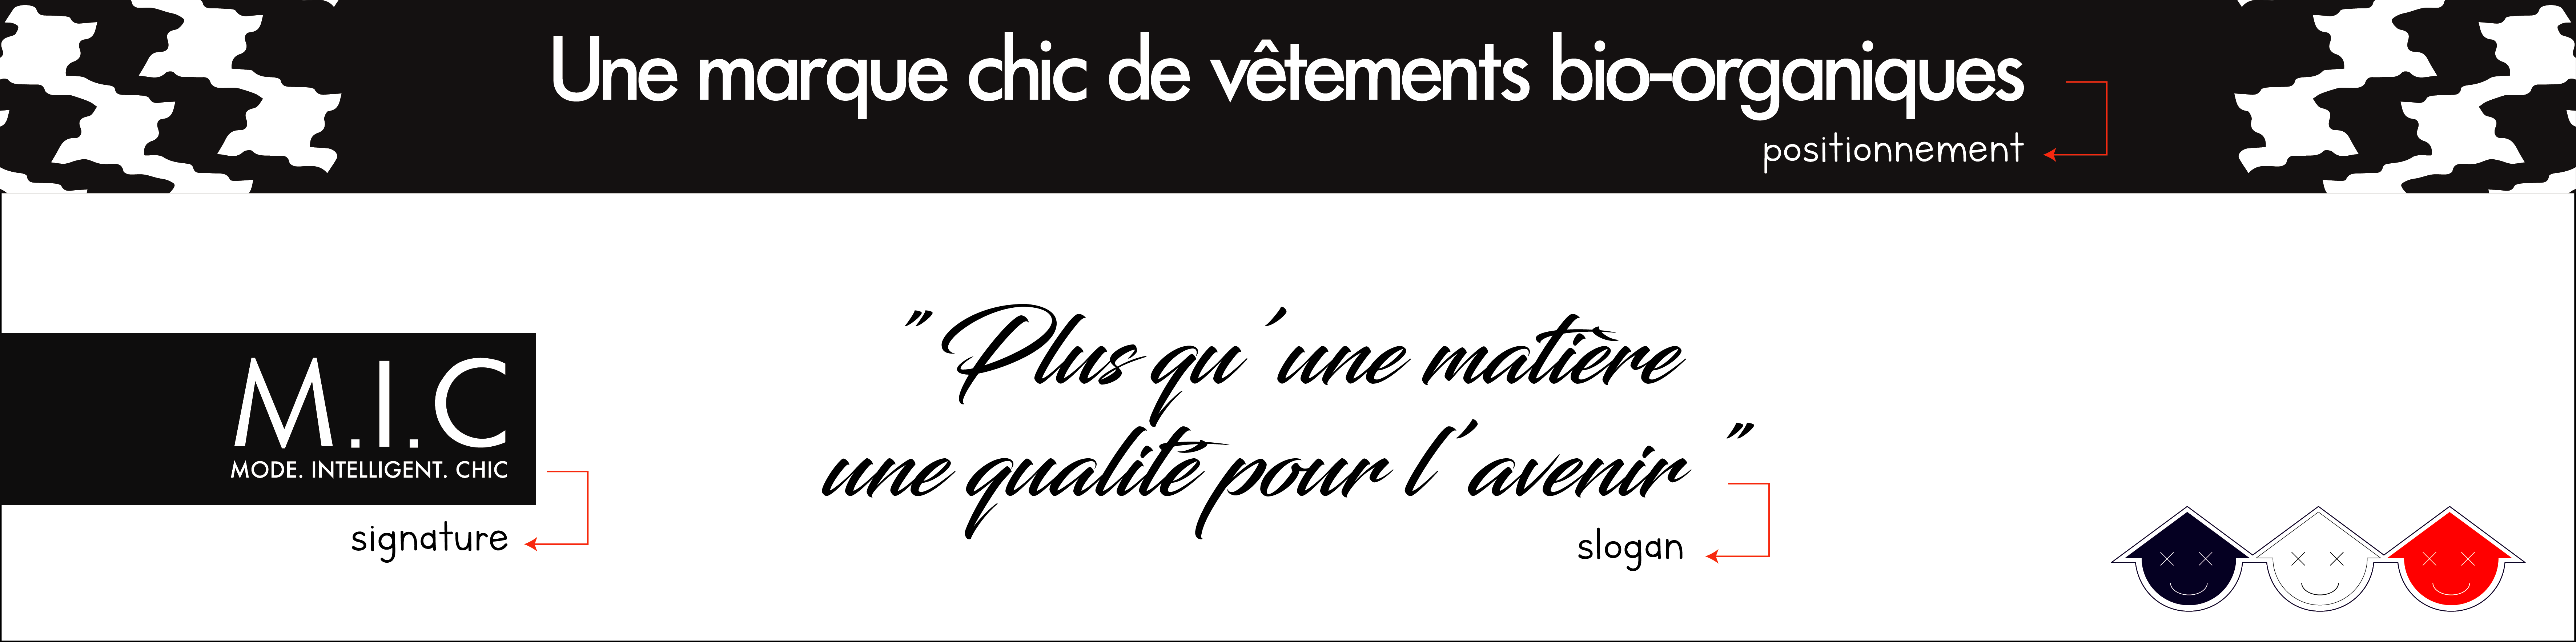 Positionnement M.I.C